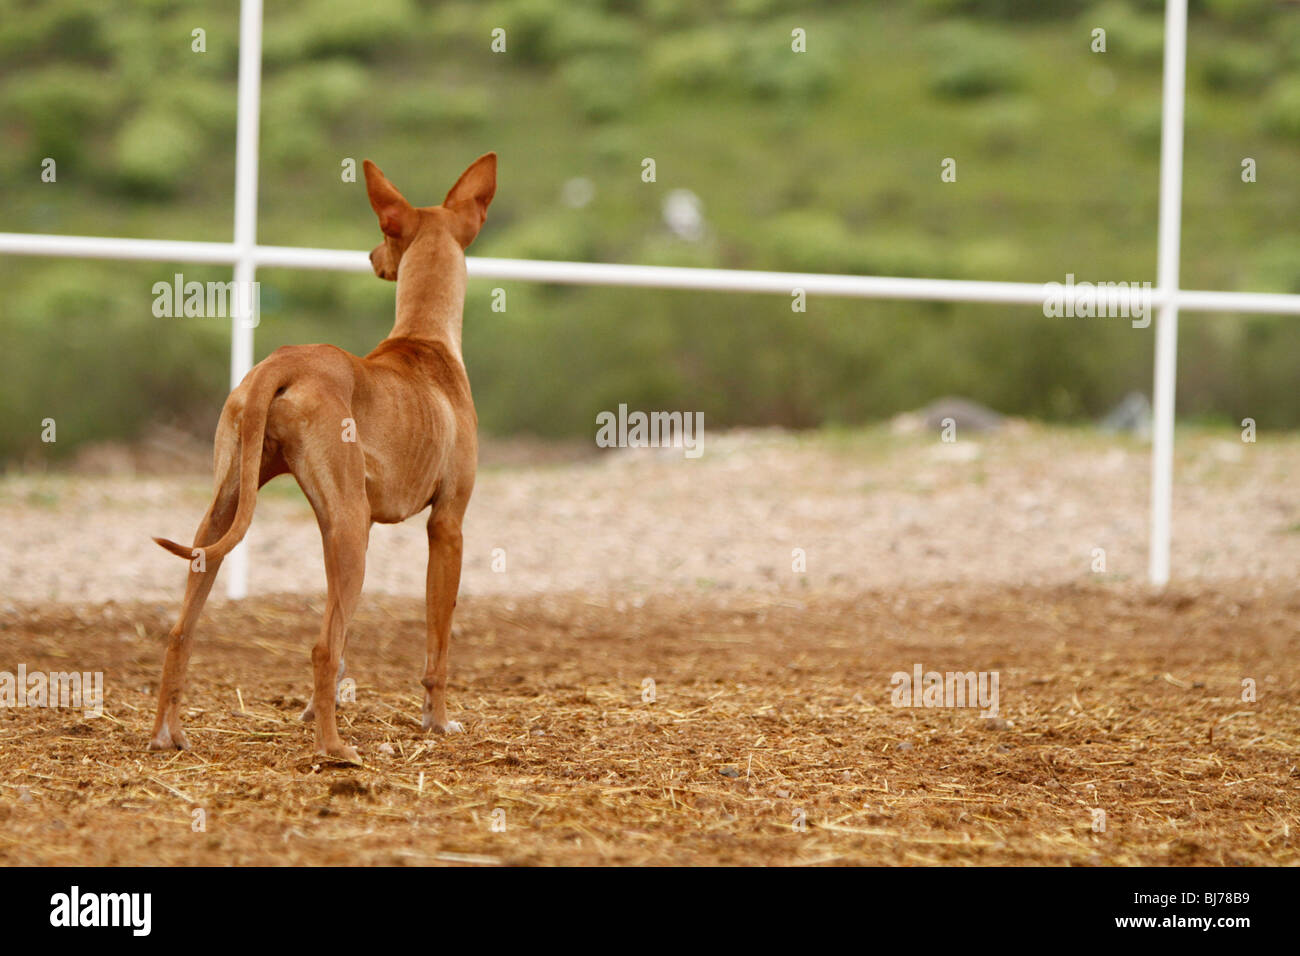 Very thin Brown dog with blurred background - Stock Image